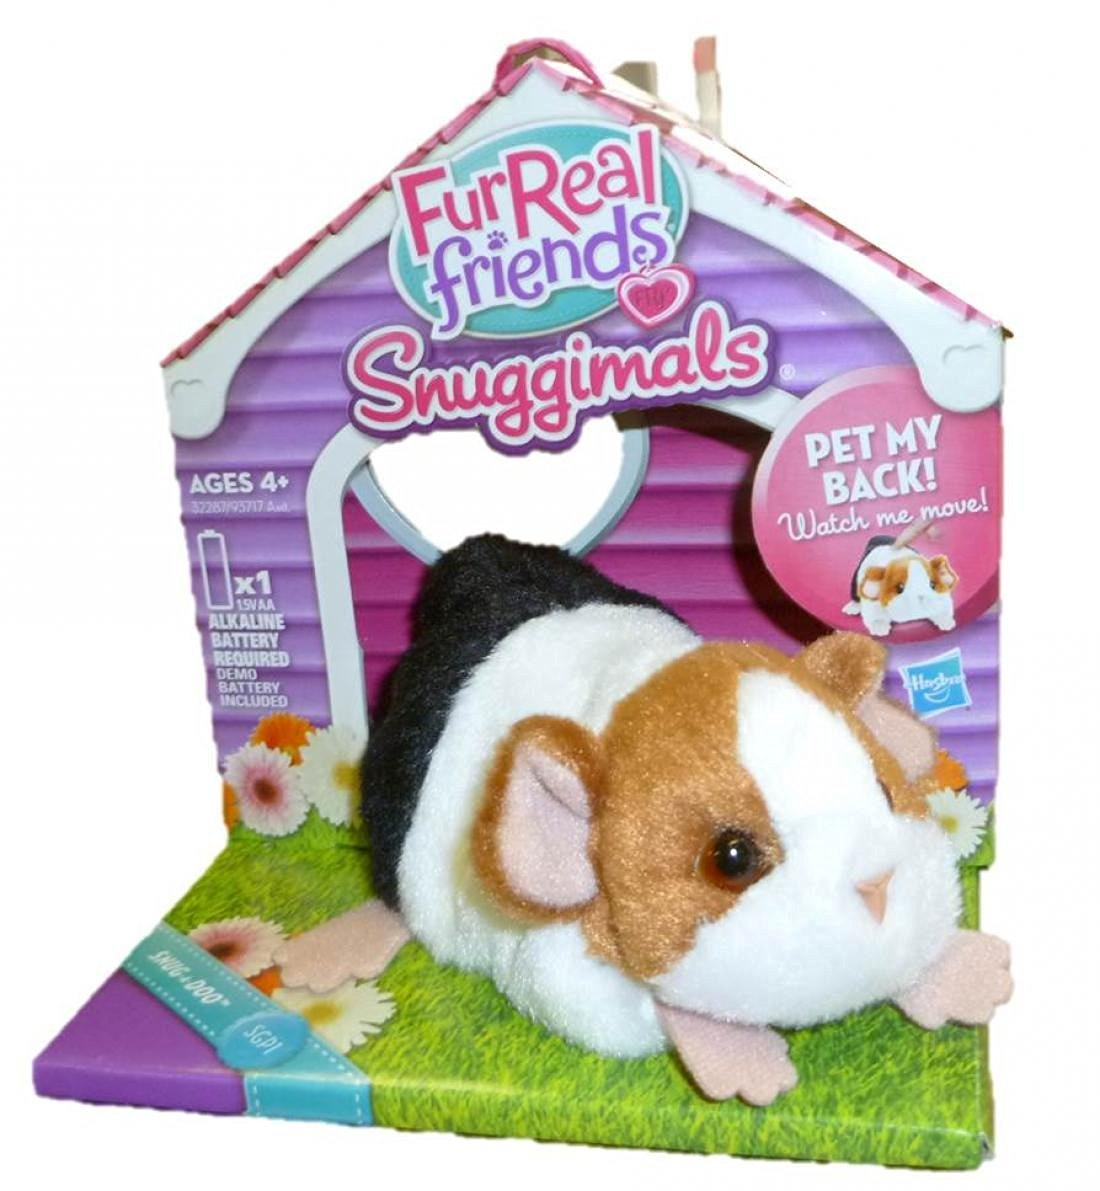 Buy Furreal Friends Snuggimals Guinea Pig In Cheap Price On Alibaba Com